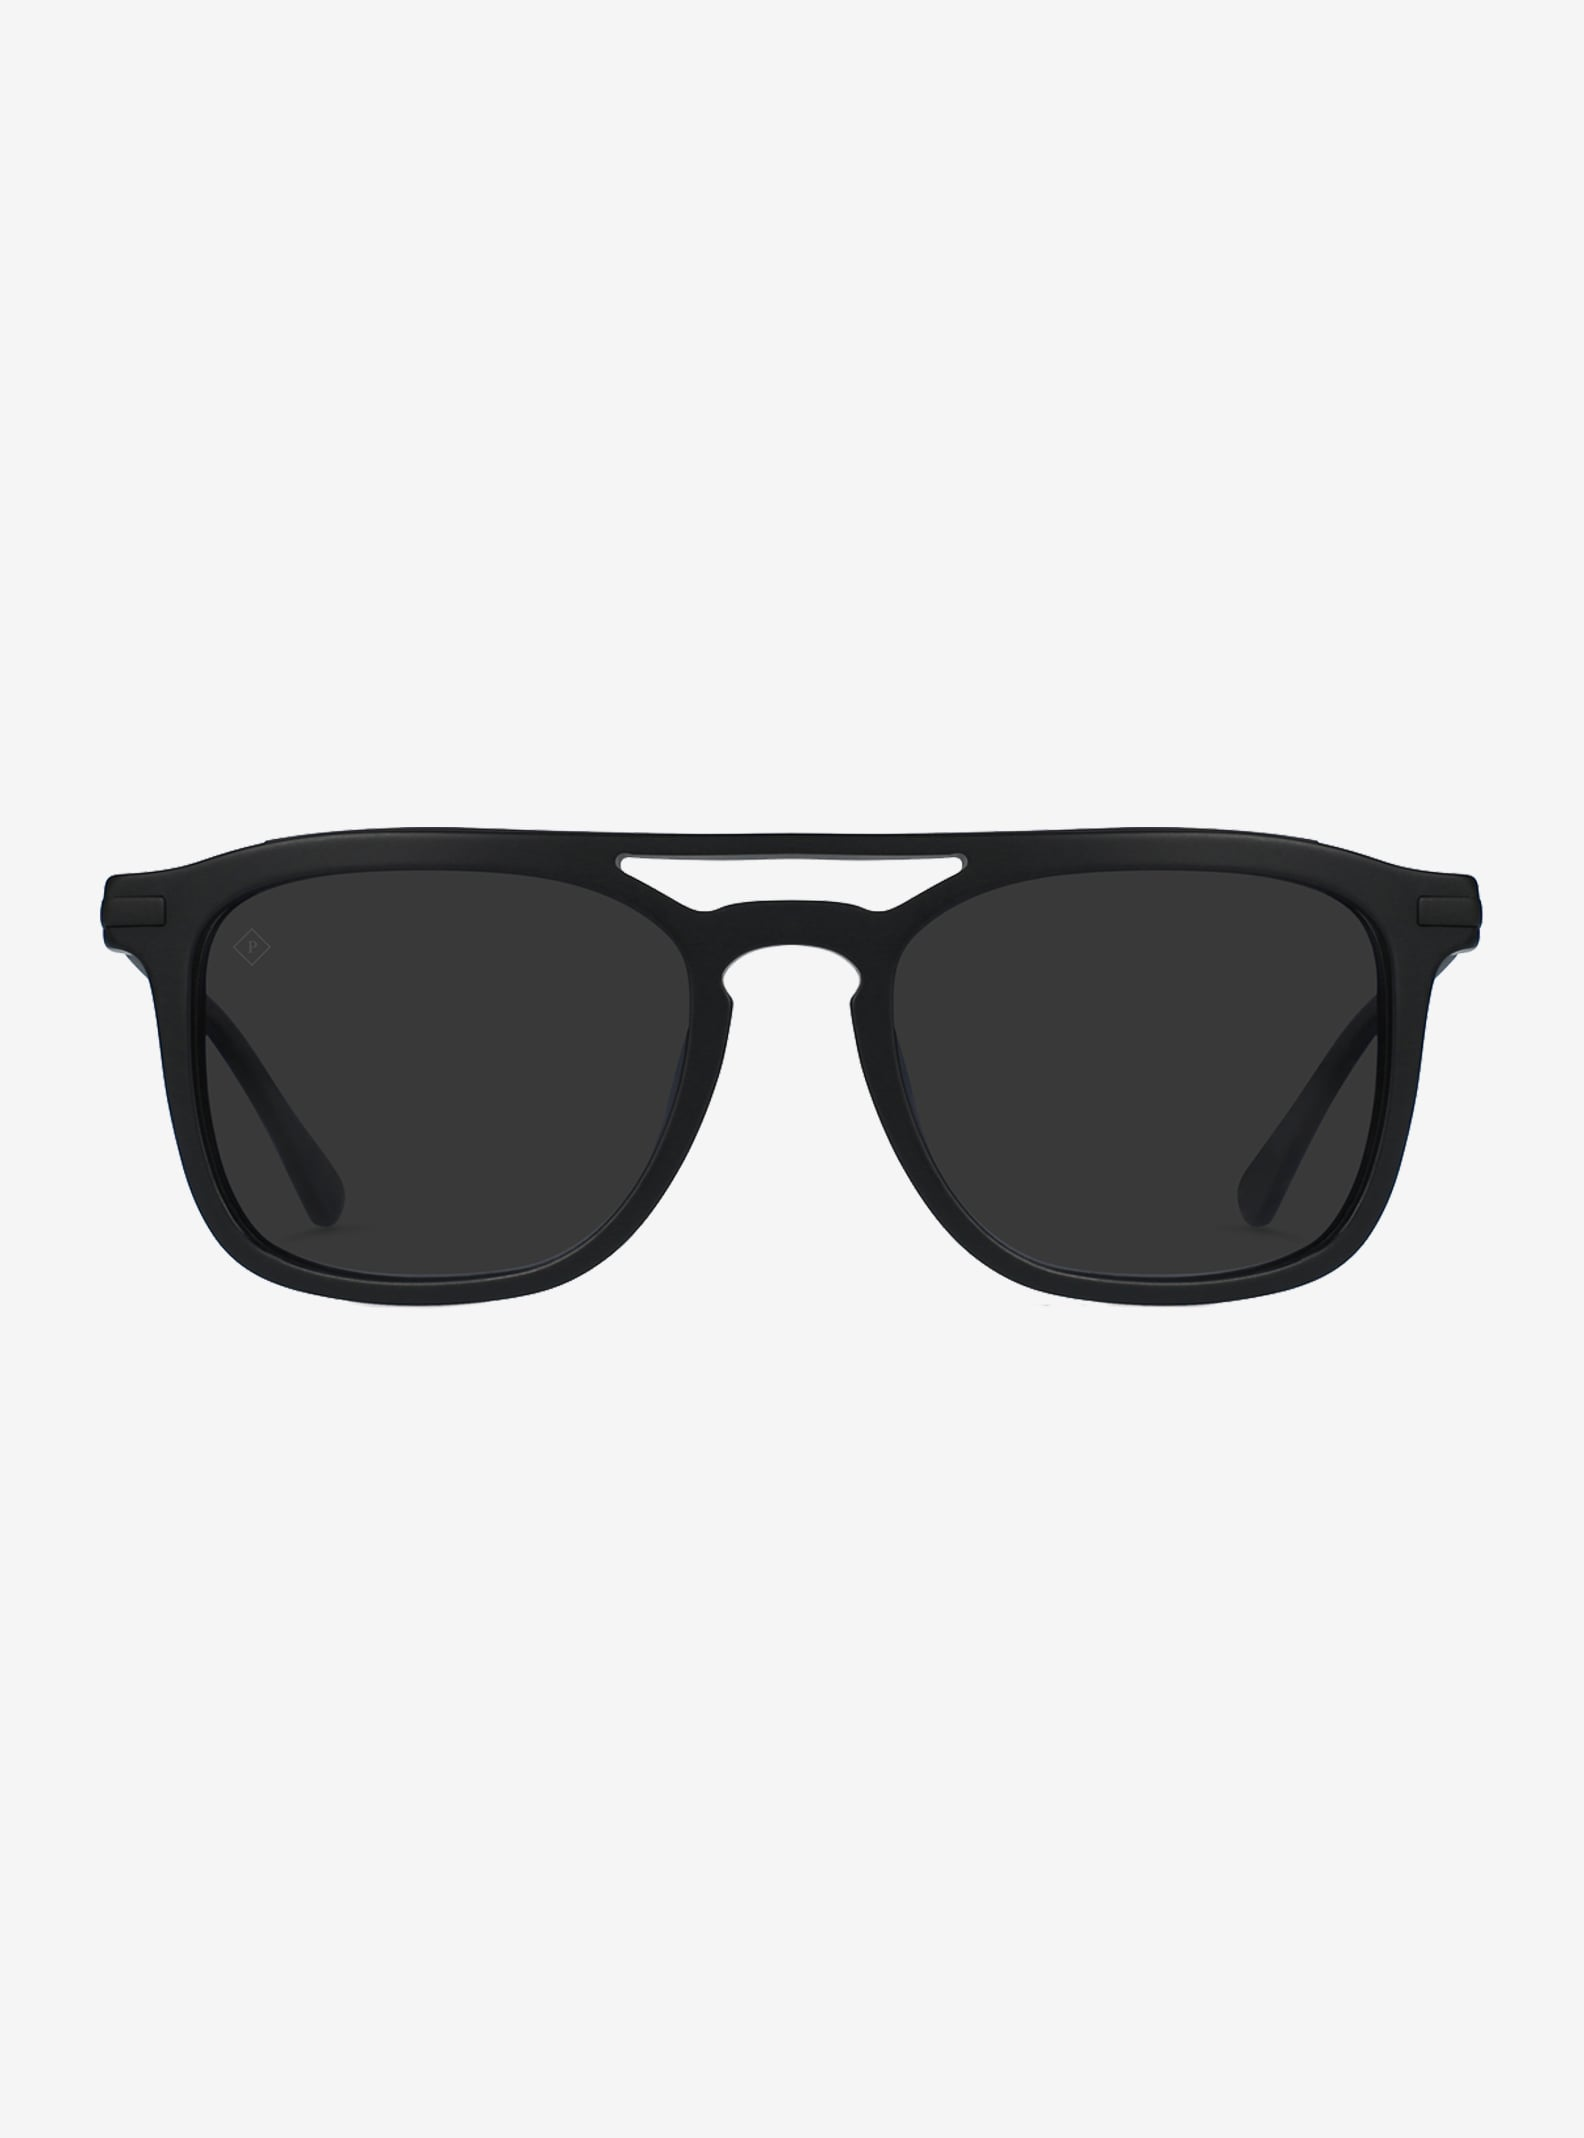 RAEN Kettner Sunglasses shown in Matte Black/ Brindle (Black Polarized)